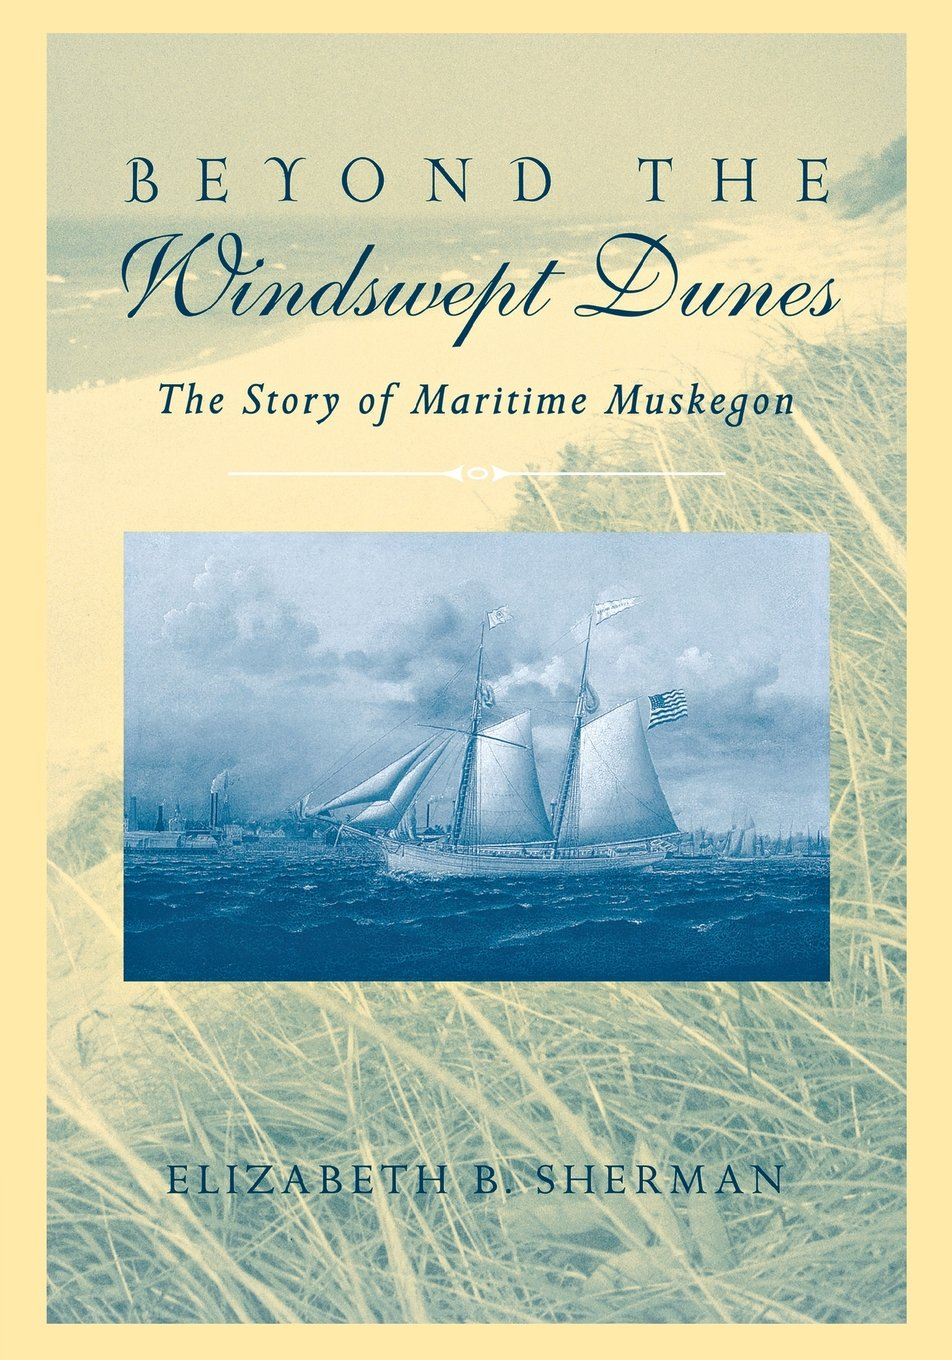 Beyond the Windswept Dunes: The Story of Maritime Muskegon (Great Lakes Books Series)